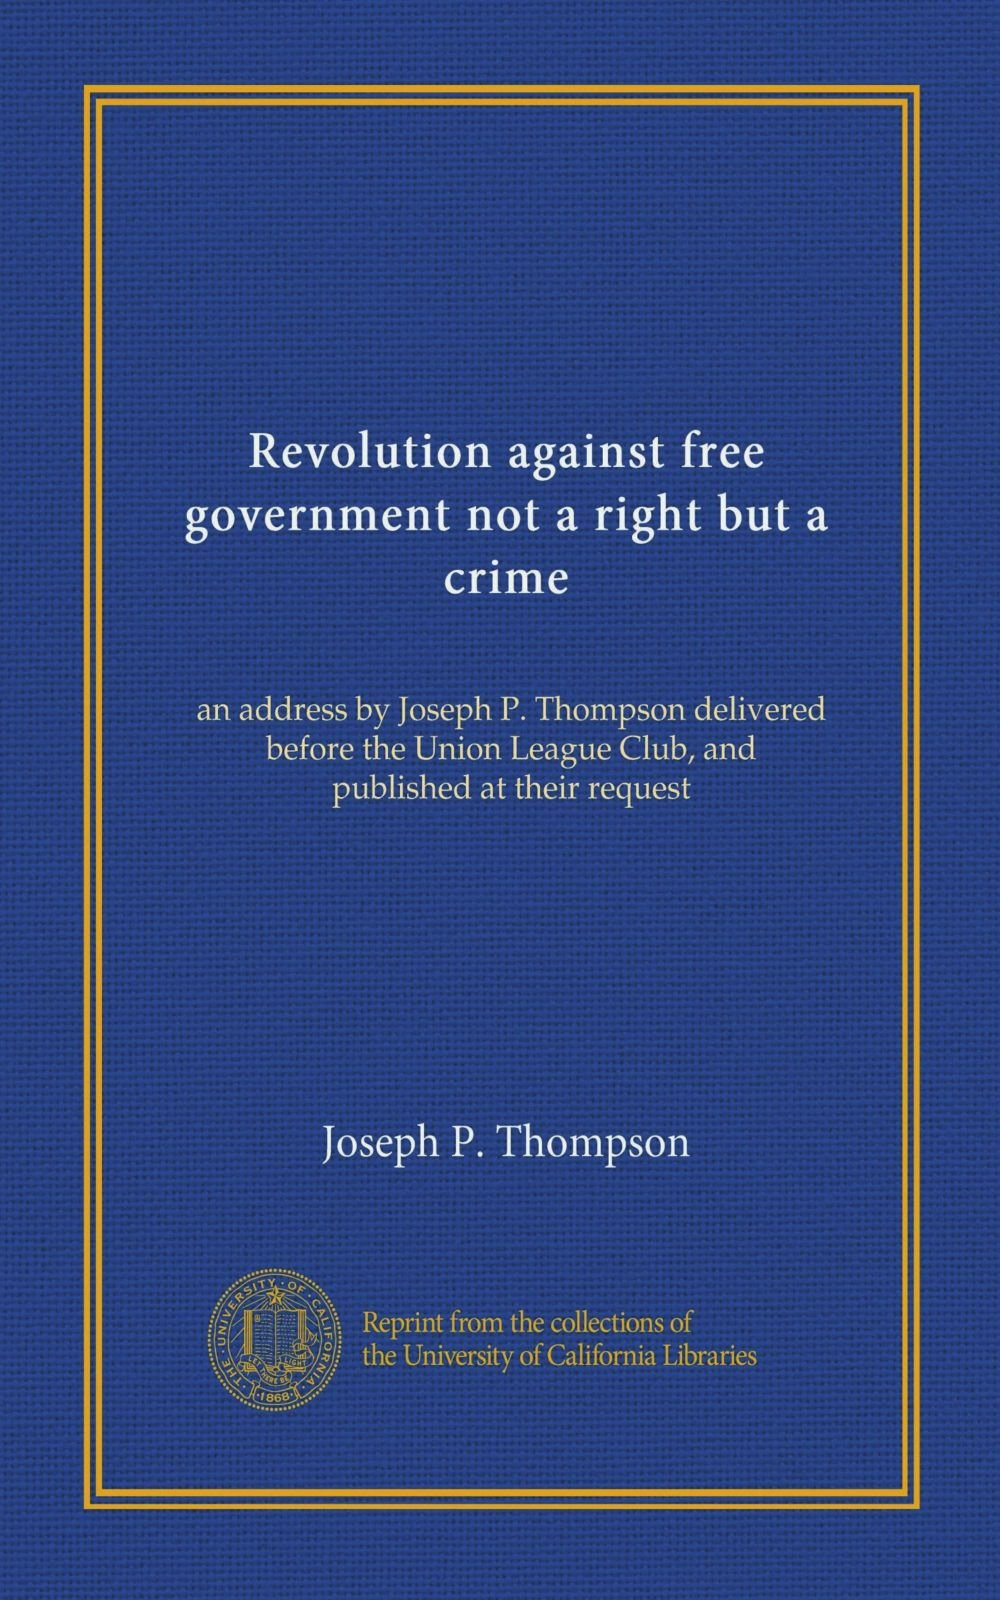 Download Revolution against free government not a right but a crime: an address by Joseph P. Thompson delivered before the Union League Club, and published at their request ebook